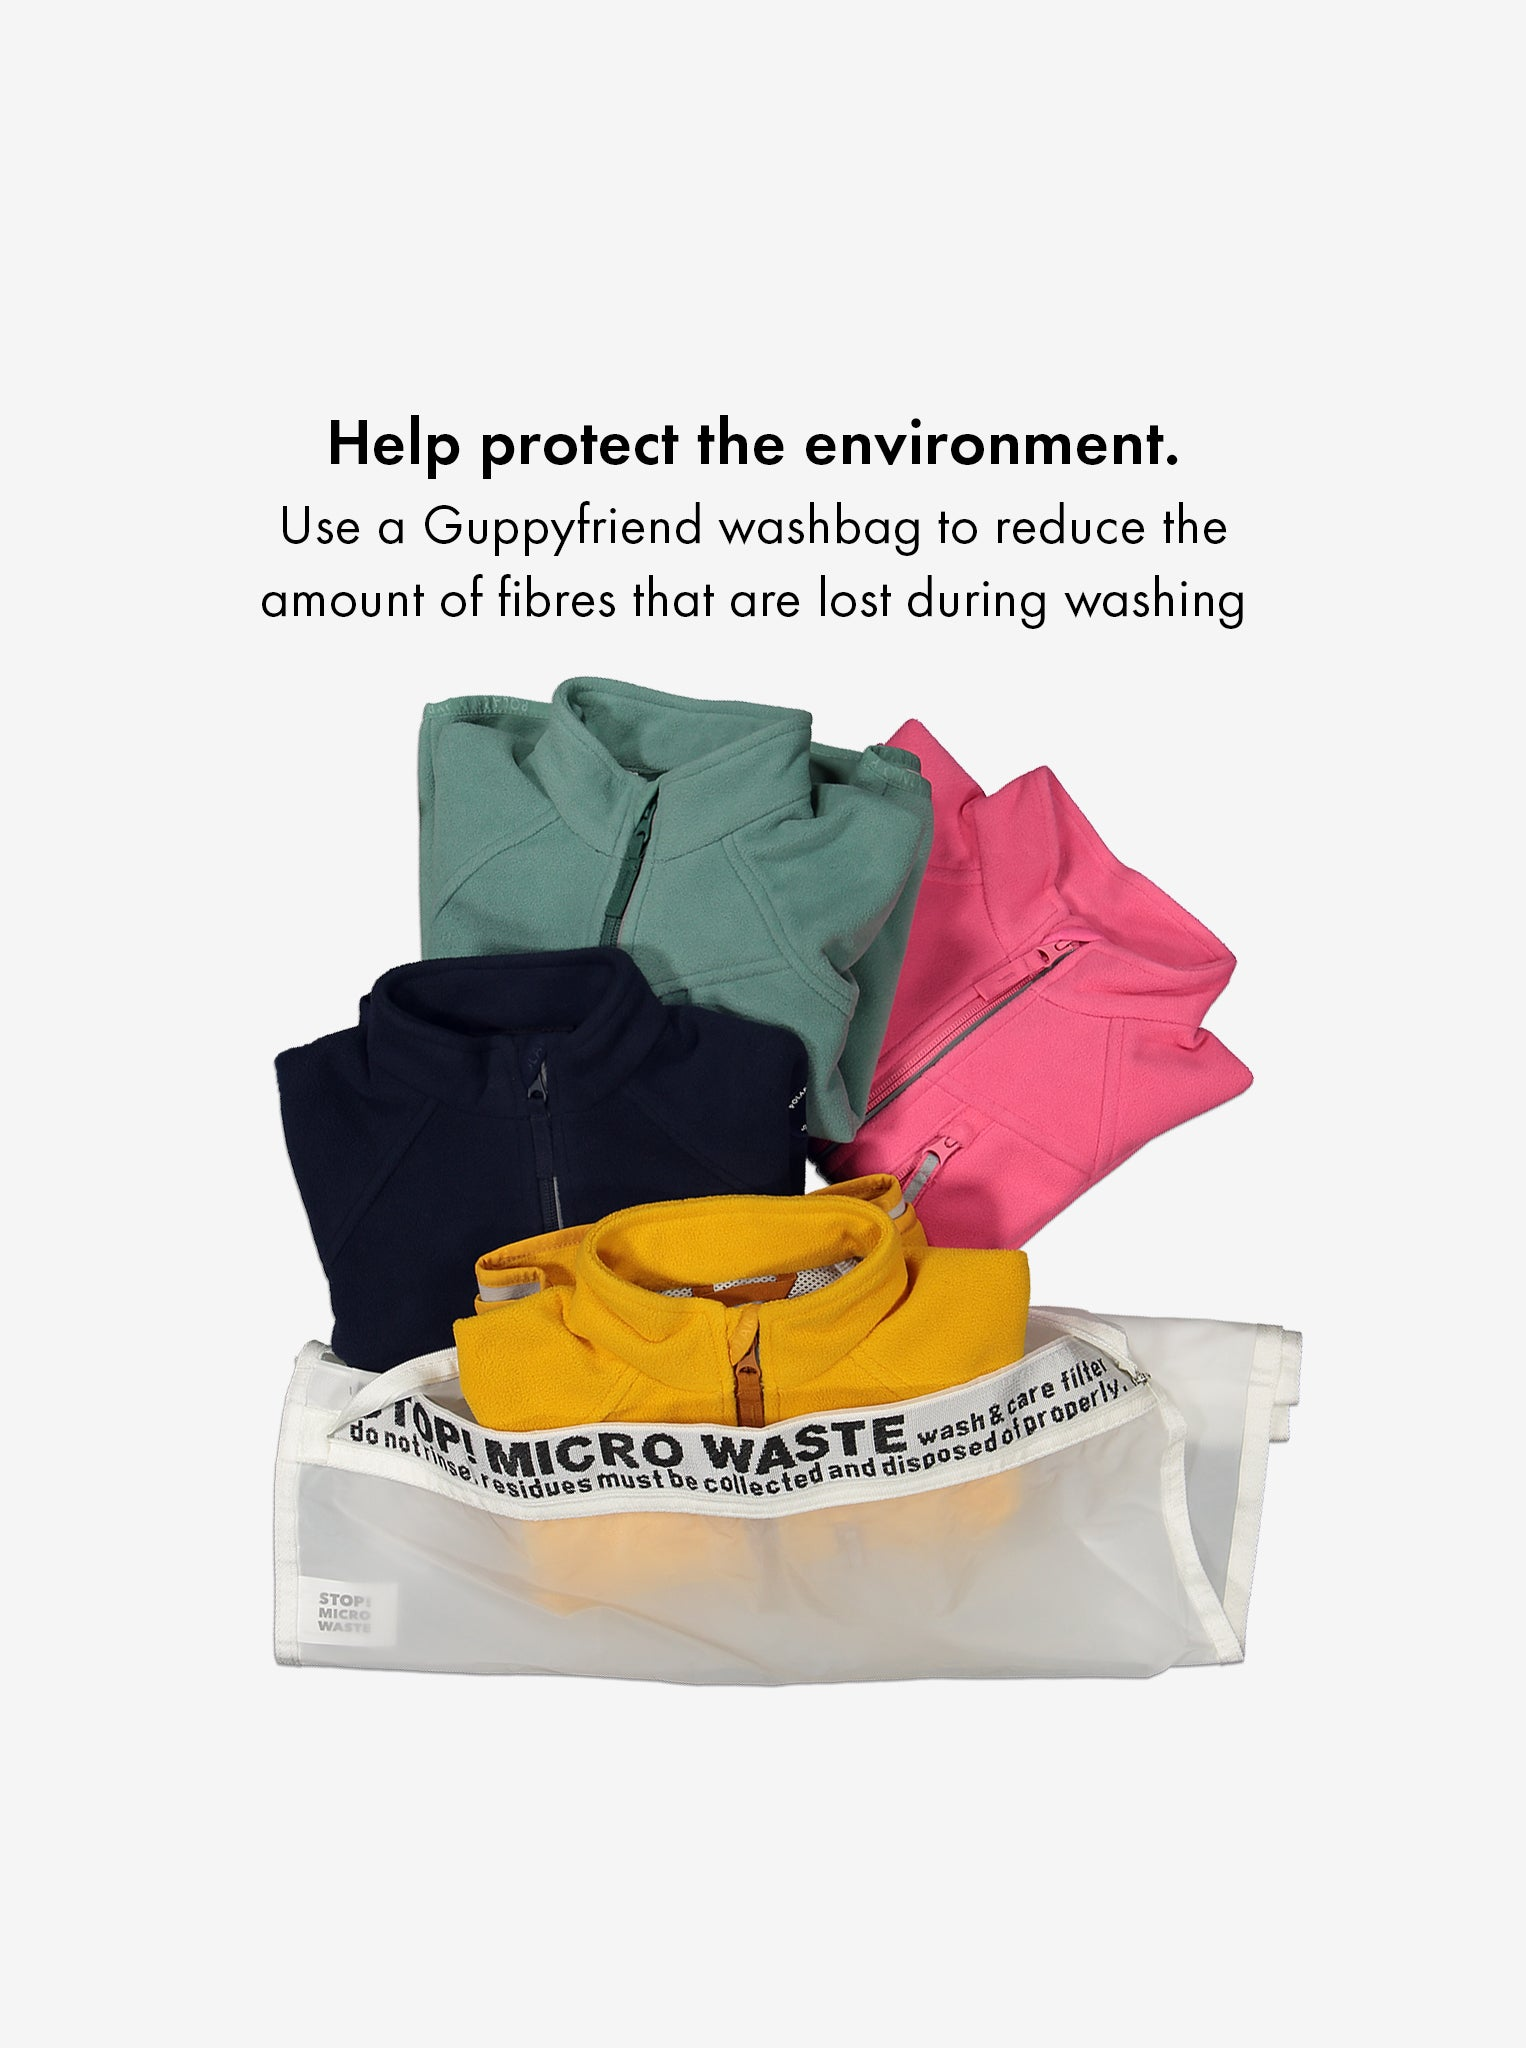 Waterproof, kids fleece jacket in green, pink, navy, and yellow place in an eco-friendly, Guppyfriend washbag.